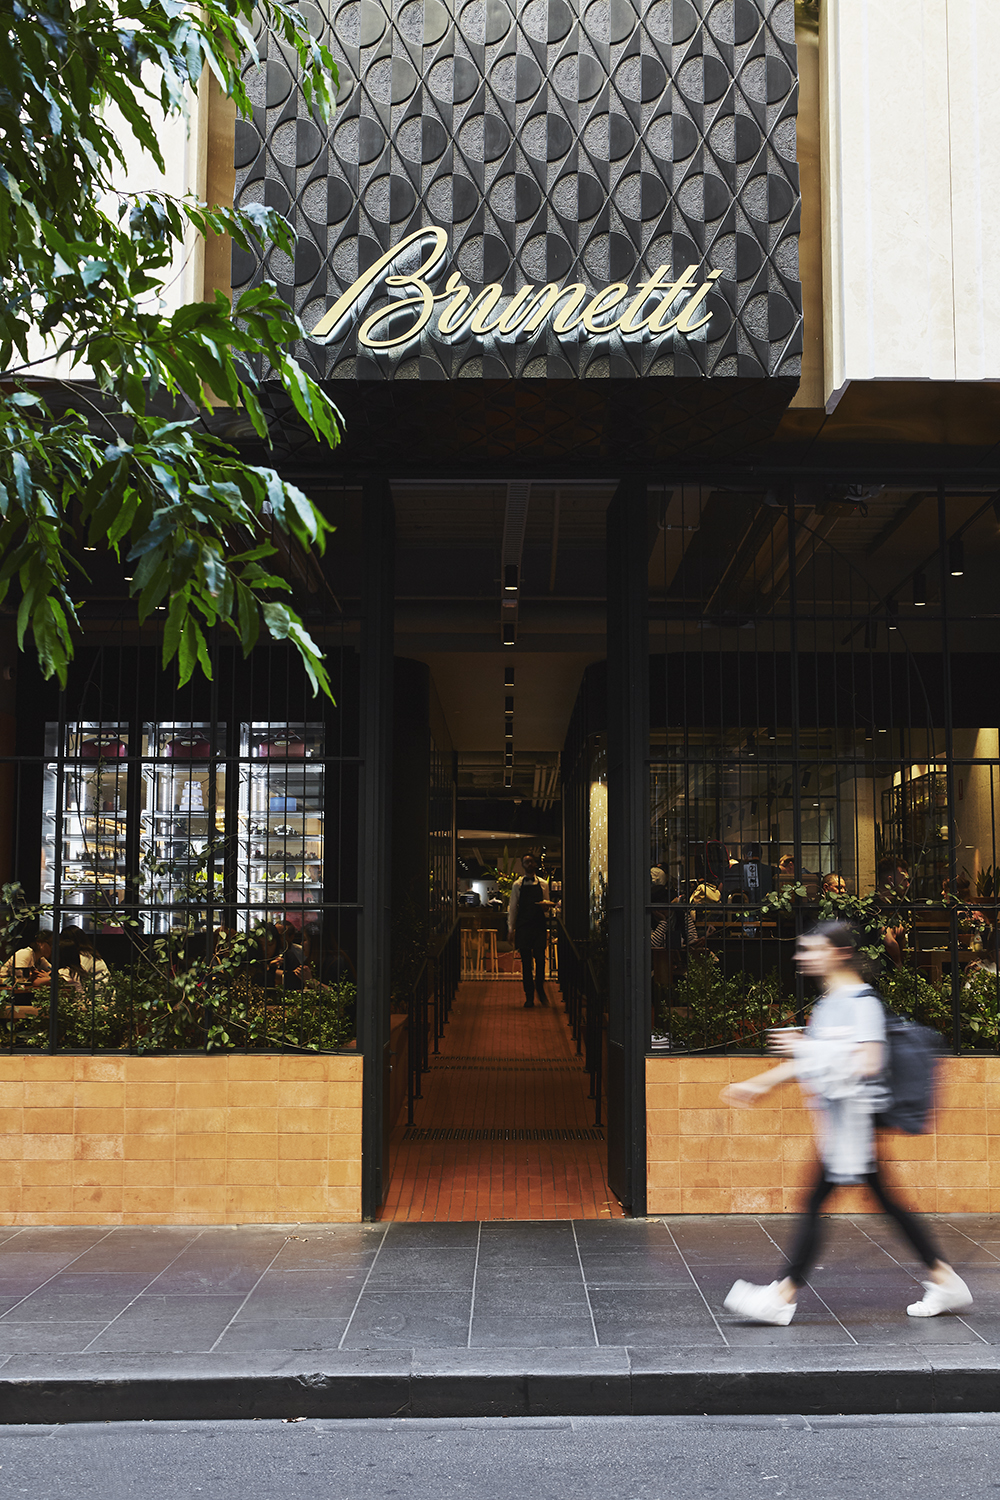 Techné Architecture And Interior Design Brunetti Project & Interview Feature Melbourne, Vic, Australiatlp Techne 002